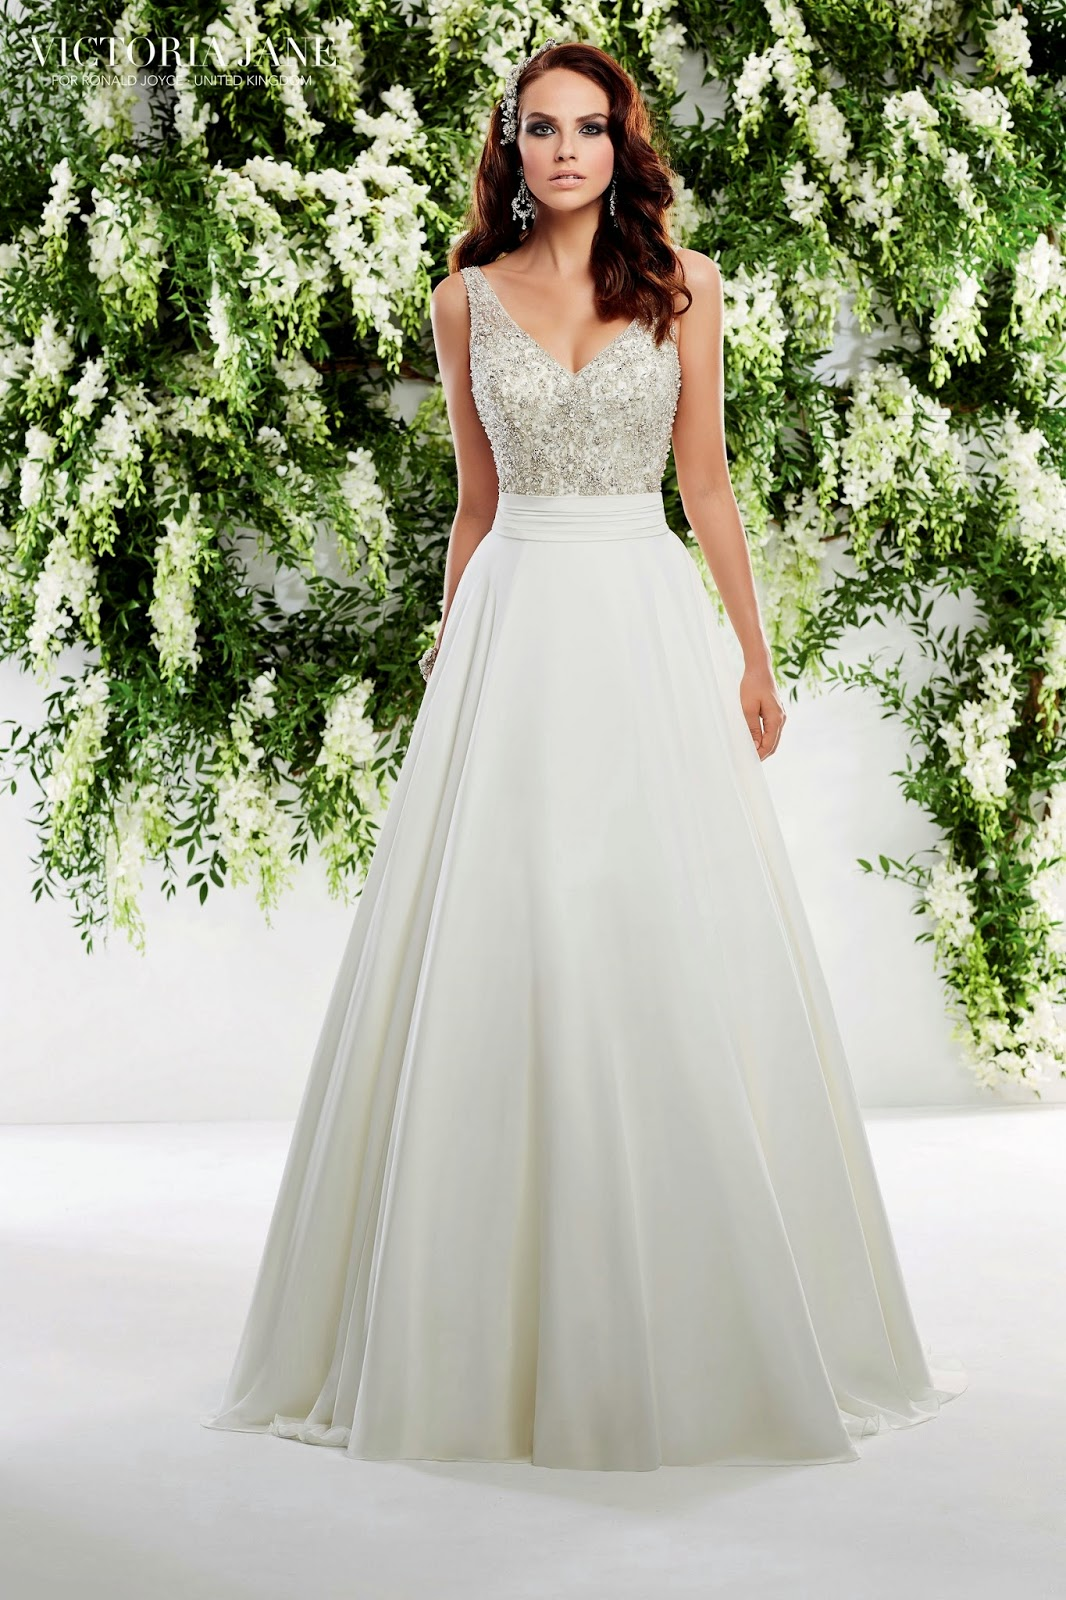 781fce2e56 The collection focuses on flattering shapes including stylish fish tale  silhouettes, subtle A-lines and full skirted traditional wedding gowns, ...